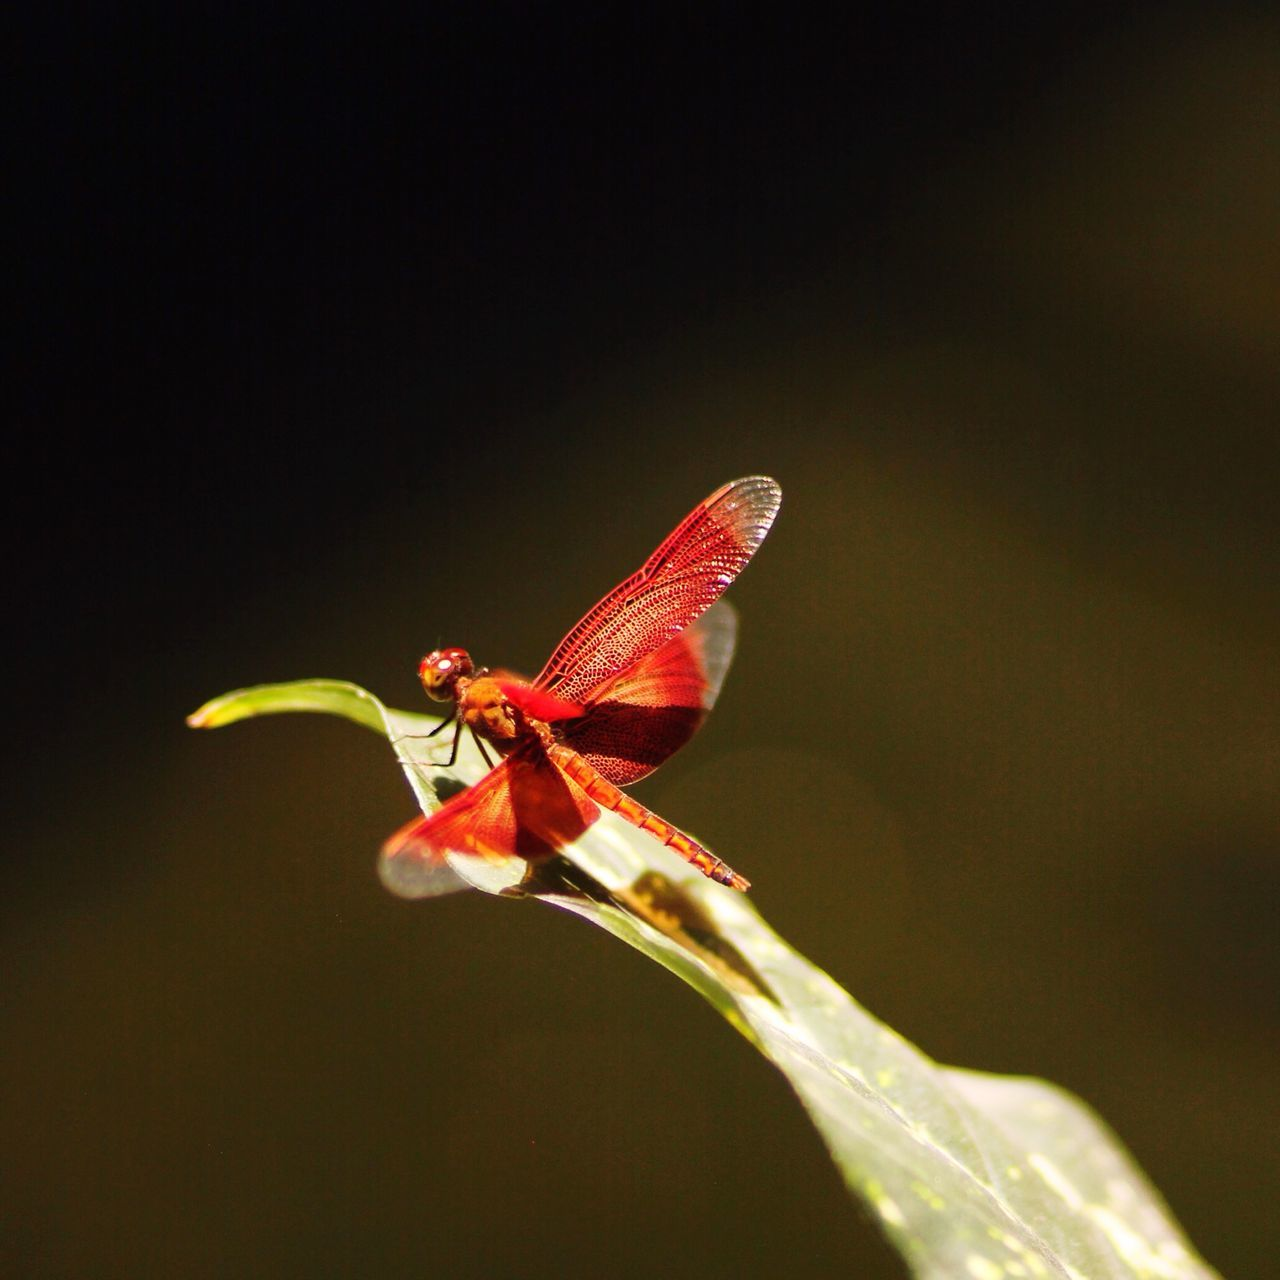 Close-Up Of Dragonfly On Plant Leaf